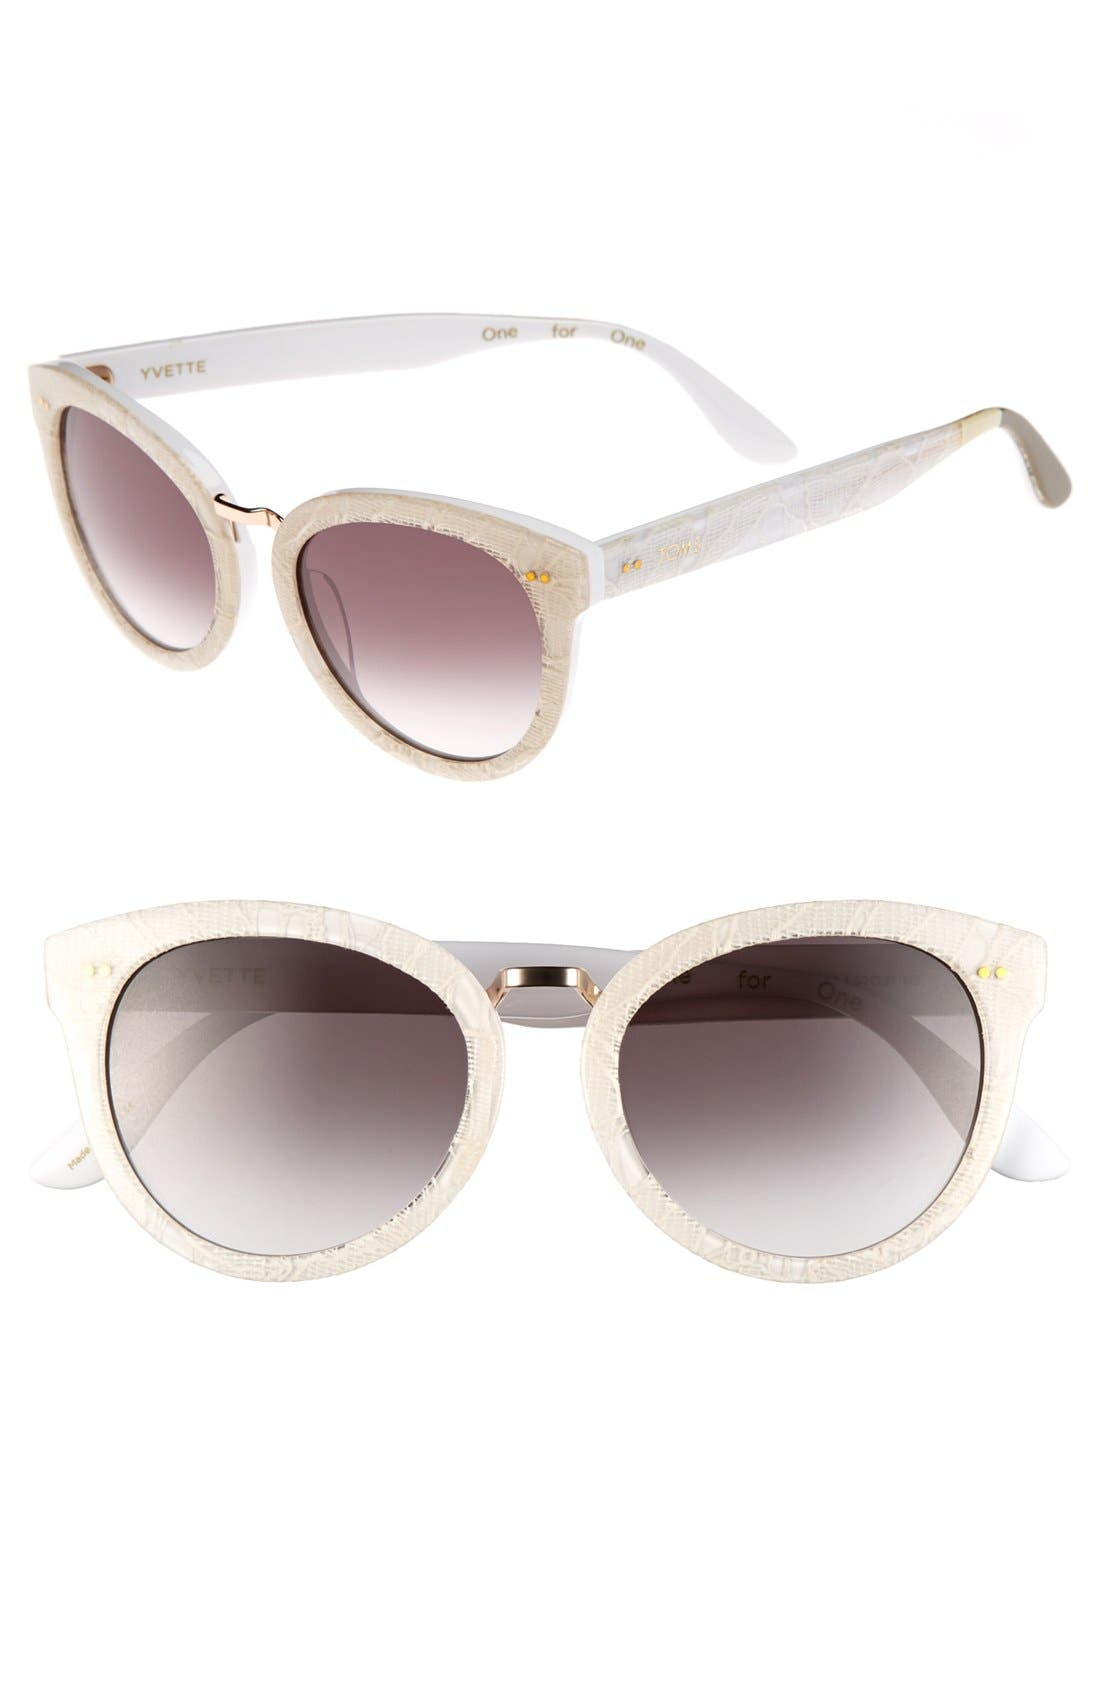 Main Image - TOMS 'Yvette' 52mm Sunglasses